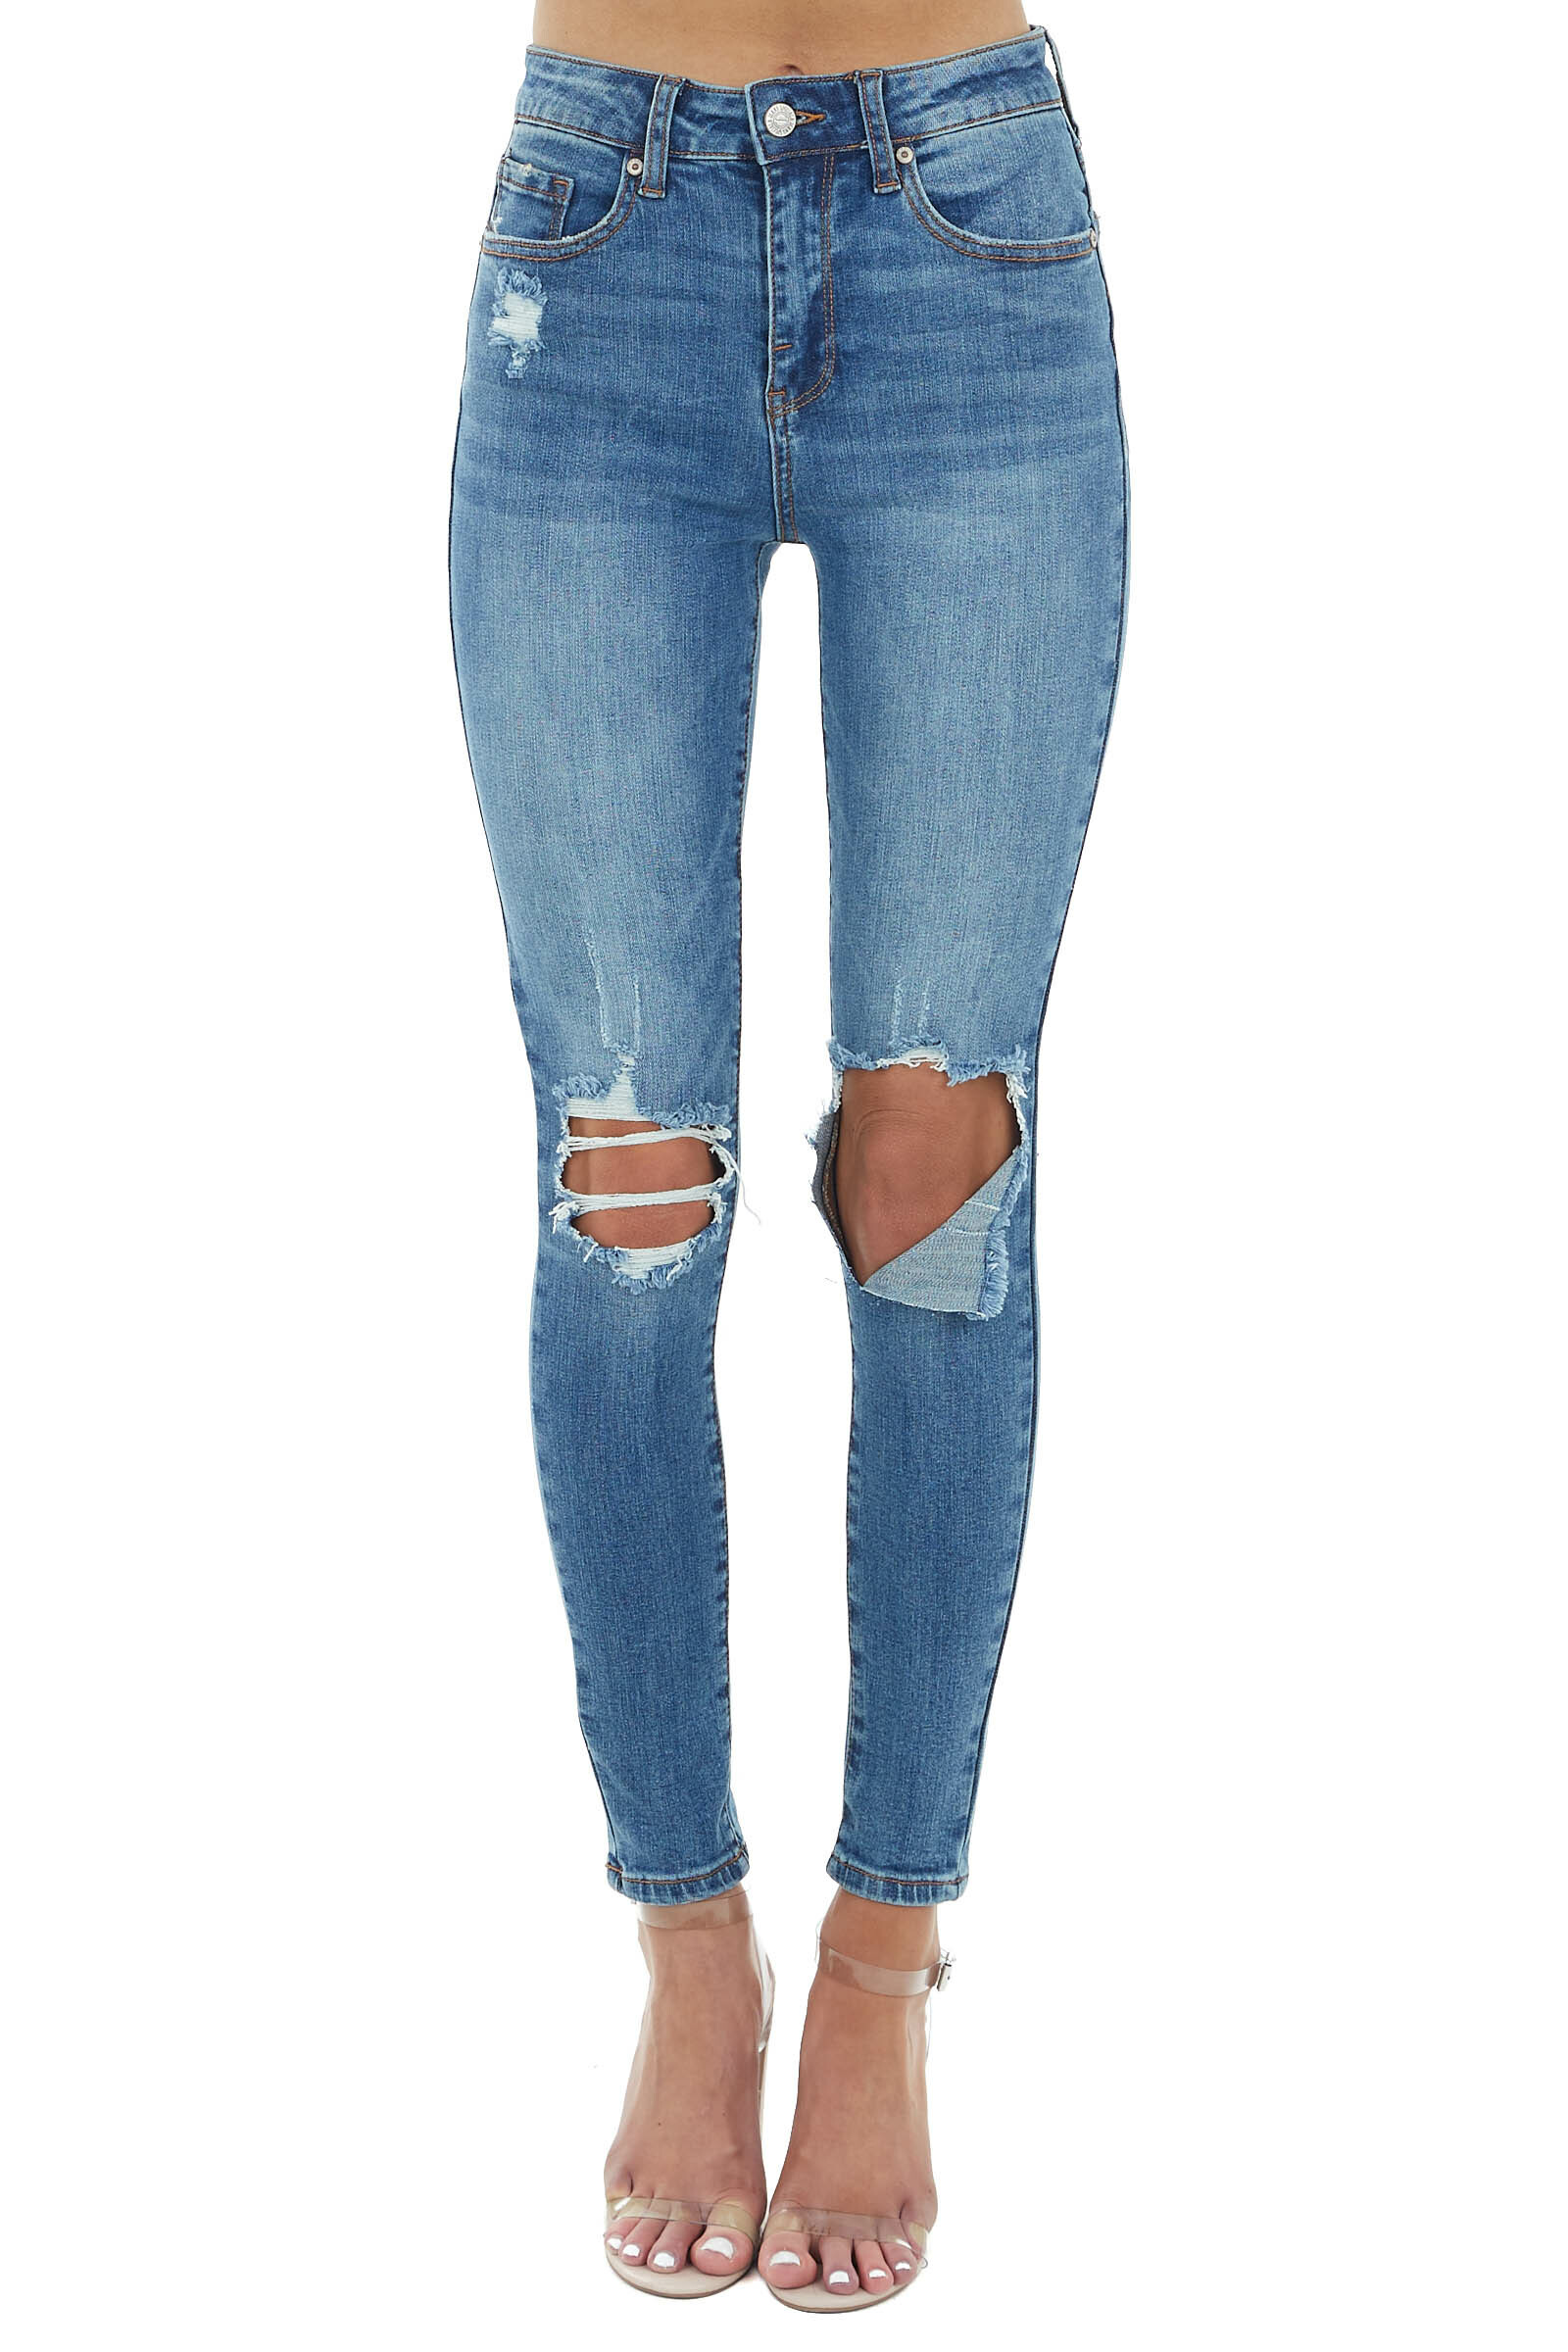 Medium Wash High Rise Skinny Jeans with Destroyed Knees